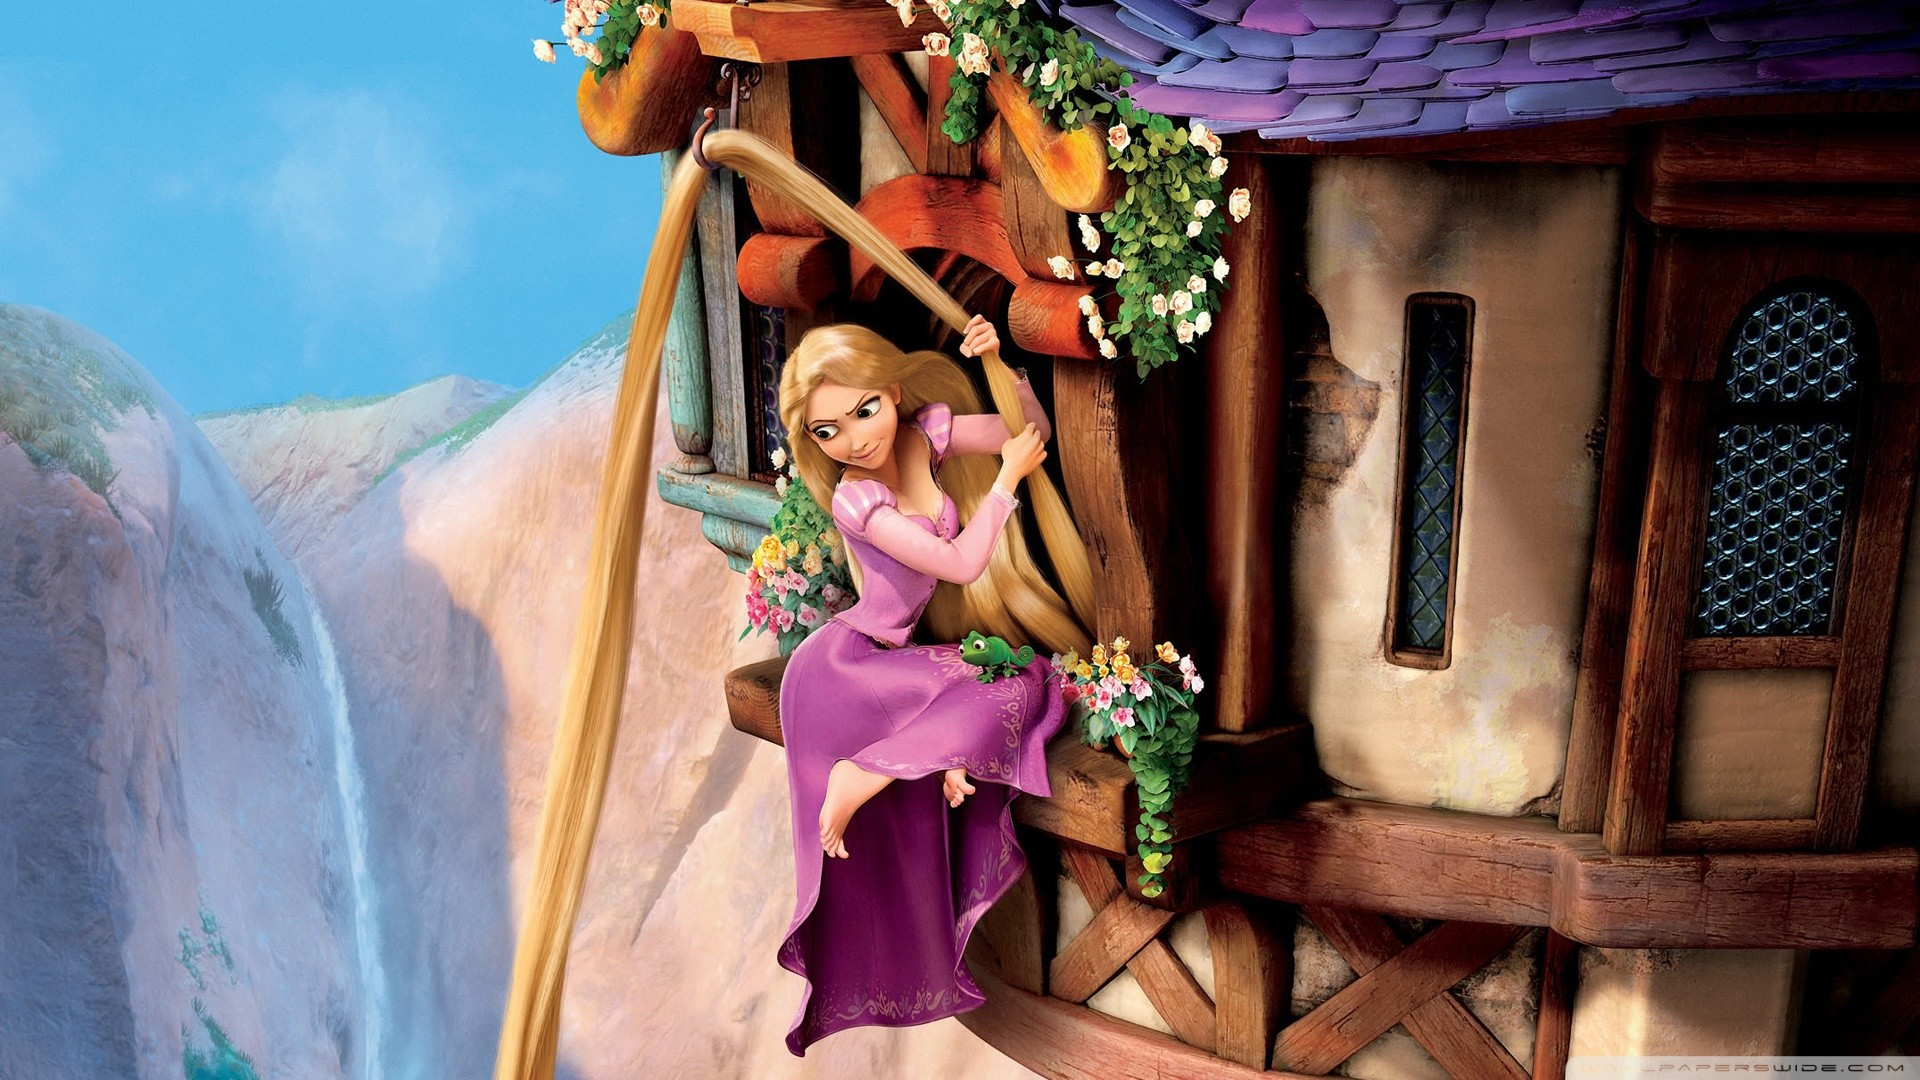 1920x1200 Tangled Images Rapunzel Wallpaper And Background Photos 1280A 1024 Wallpapers 45